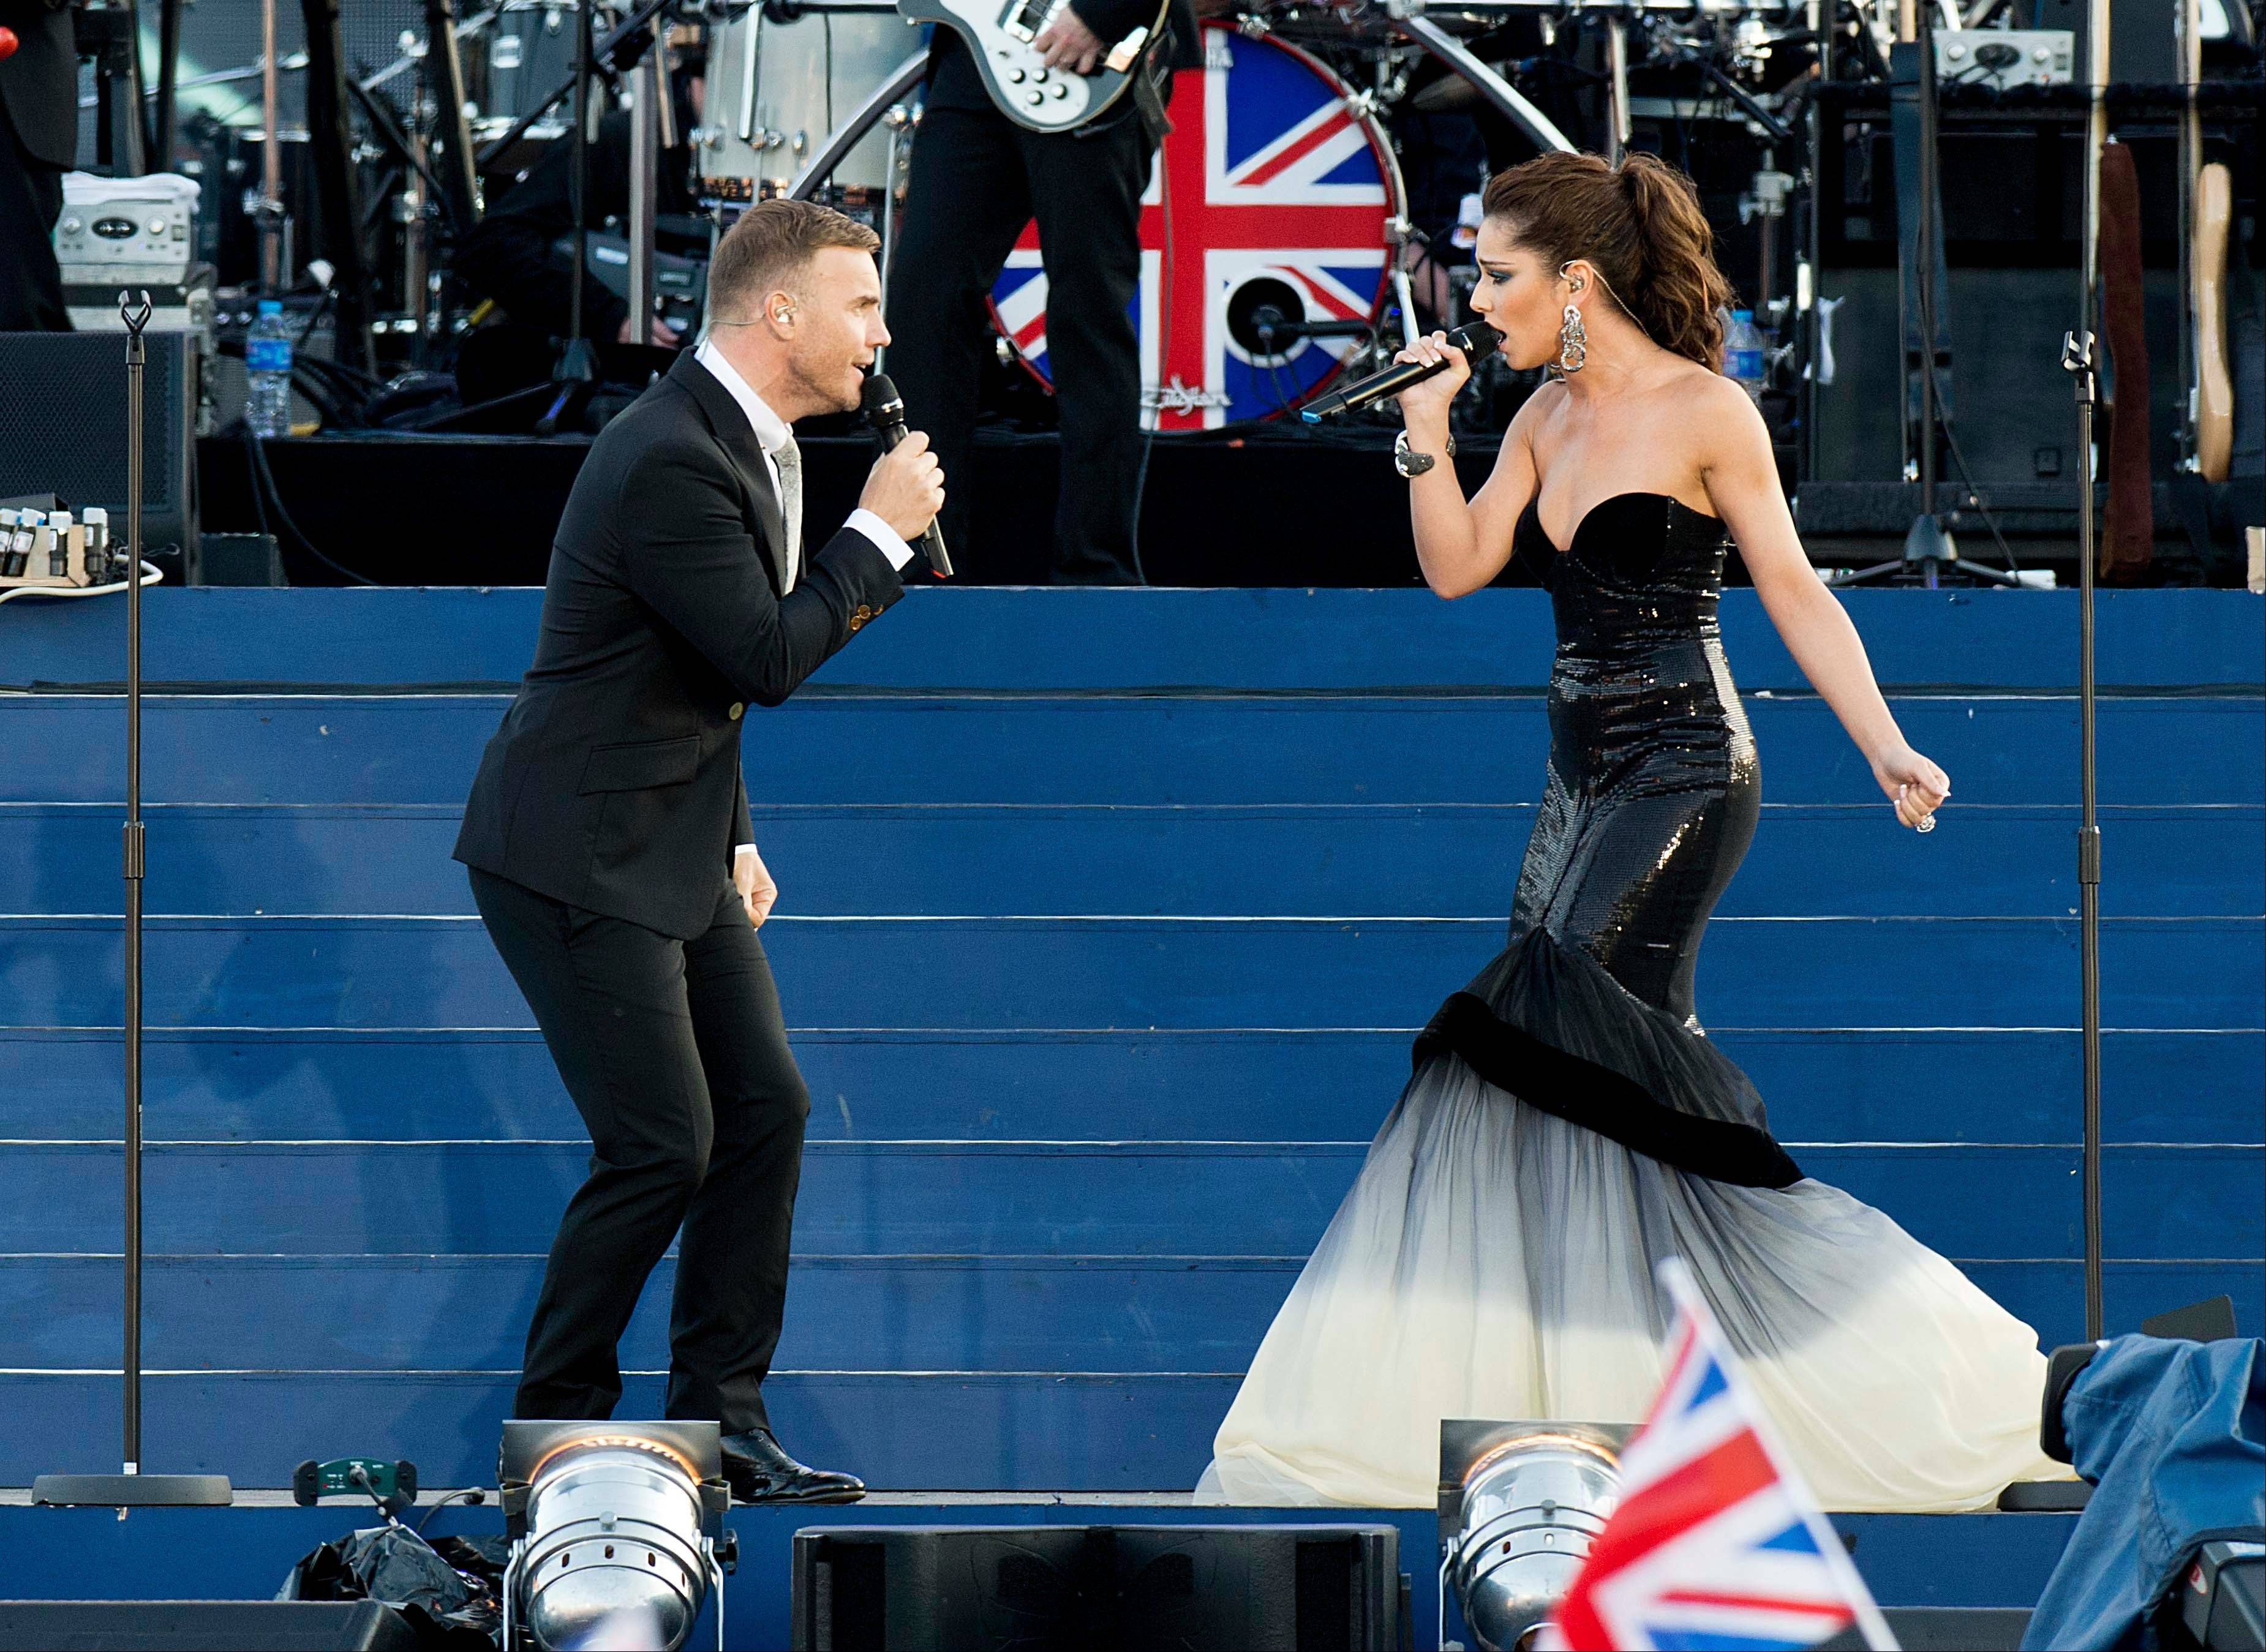 Cheryl Cole and Gary Barlow perform at the Queen's Jubilee Concert in front of Buckingham Palace, London, Monday, June 4, 2012. The concert is a part of four days of celebrations to mark the 60-year reign of Britain's Queen Elizabeth II.